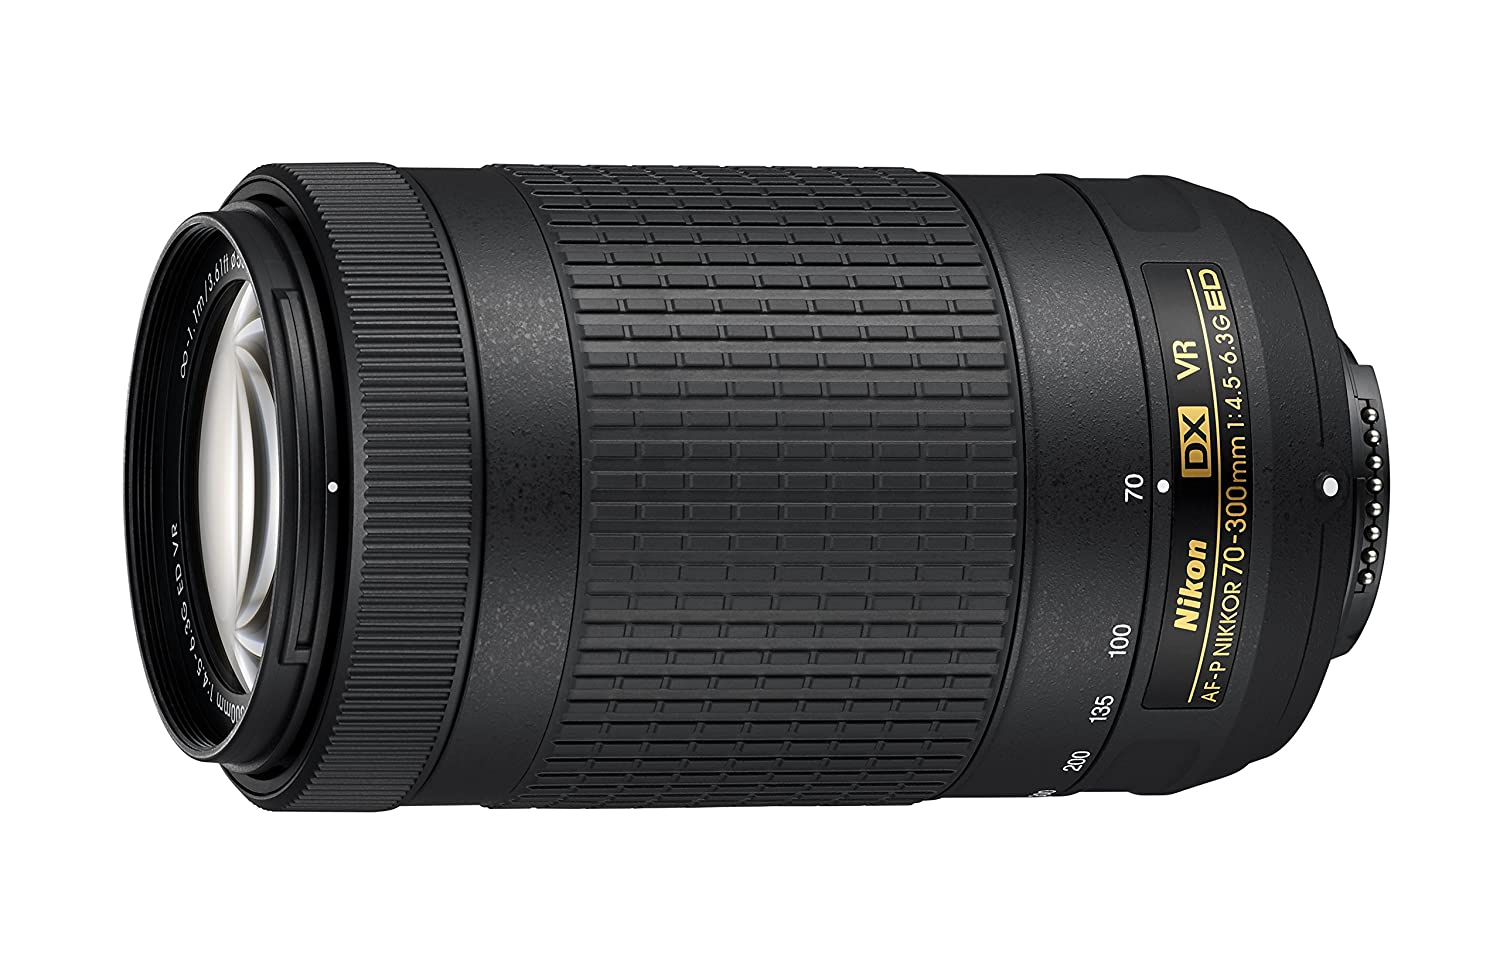 Amazon.com : Nikon AF-P DX NIKKOR 70-300mm f/4.5-6.3G ED VR Lens ...